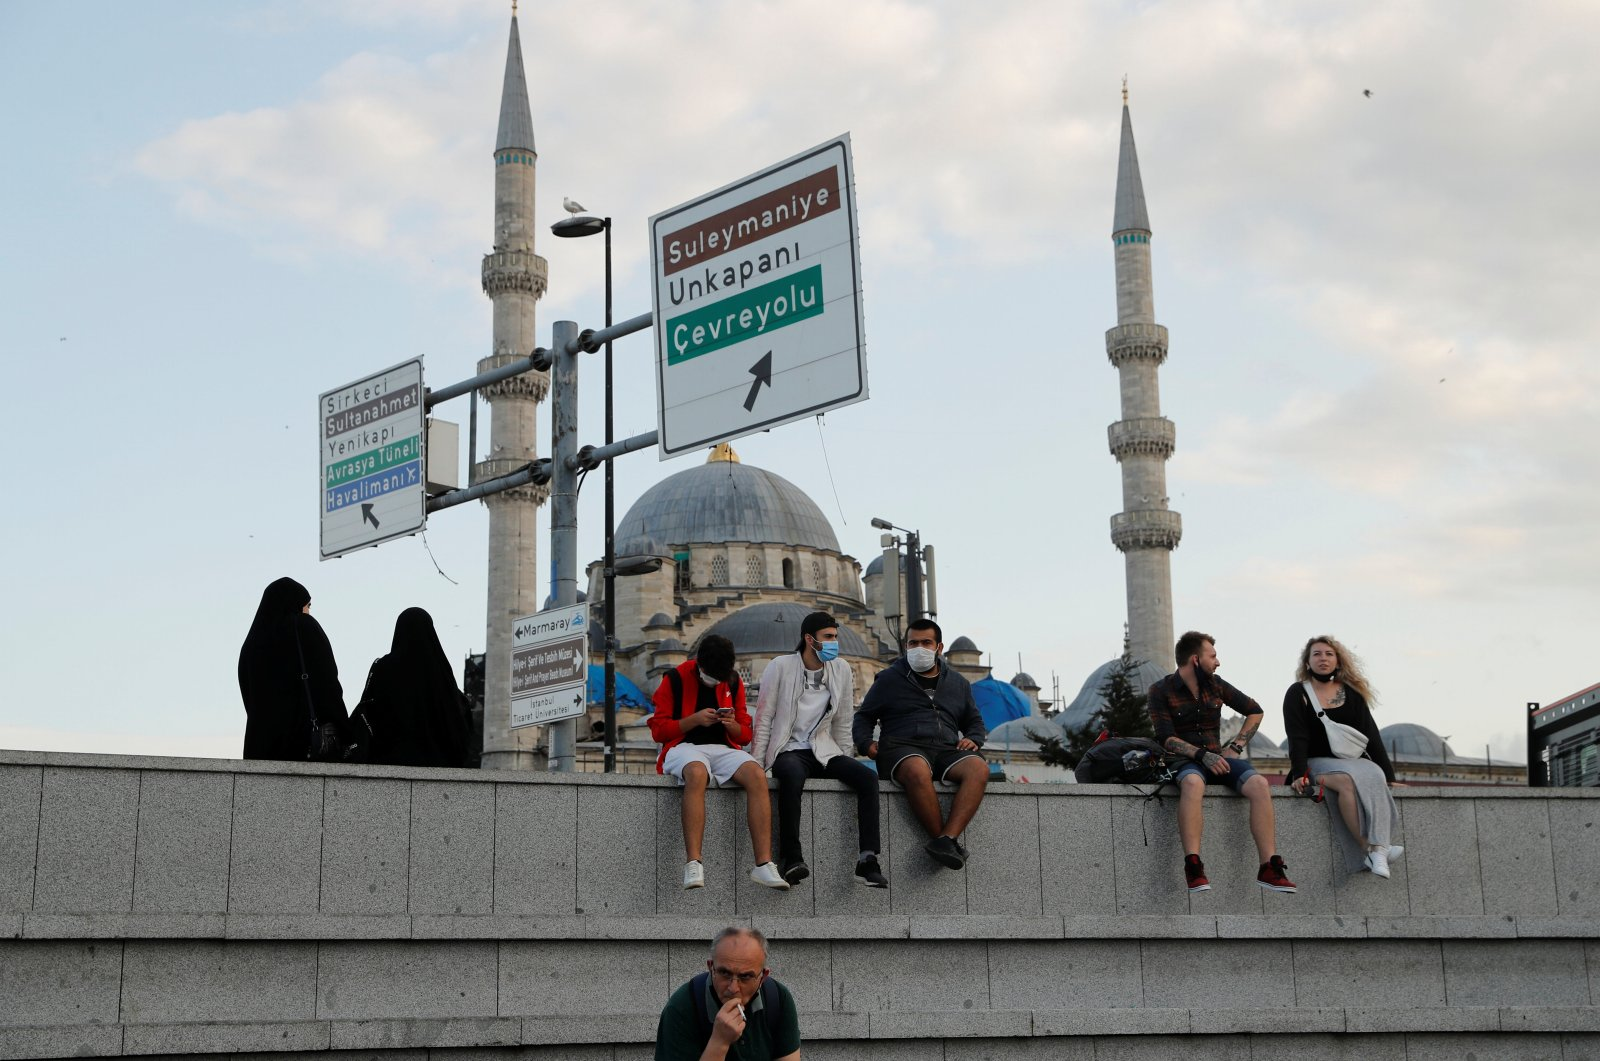 People wearing protective face masks rest near the Eminönü pier, in Istanbul, Turkey, Sept. 21, 2020. (Reuters Photo)